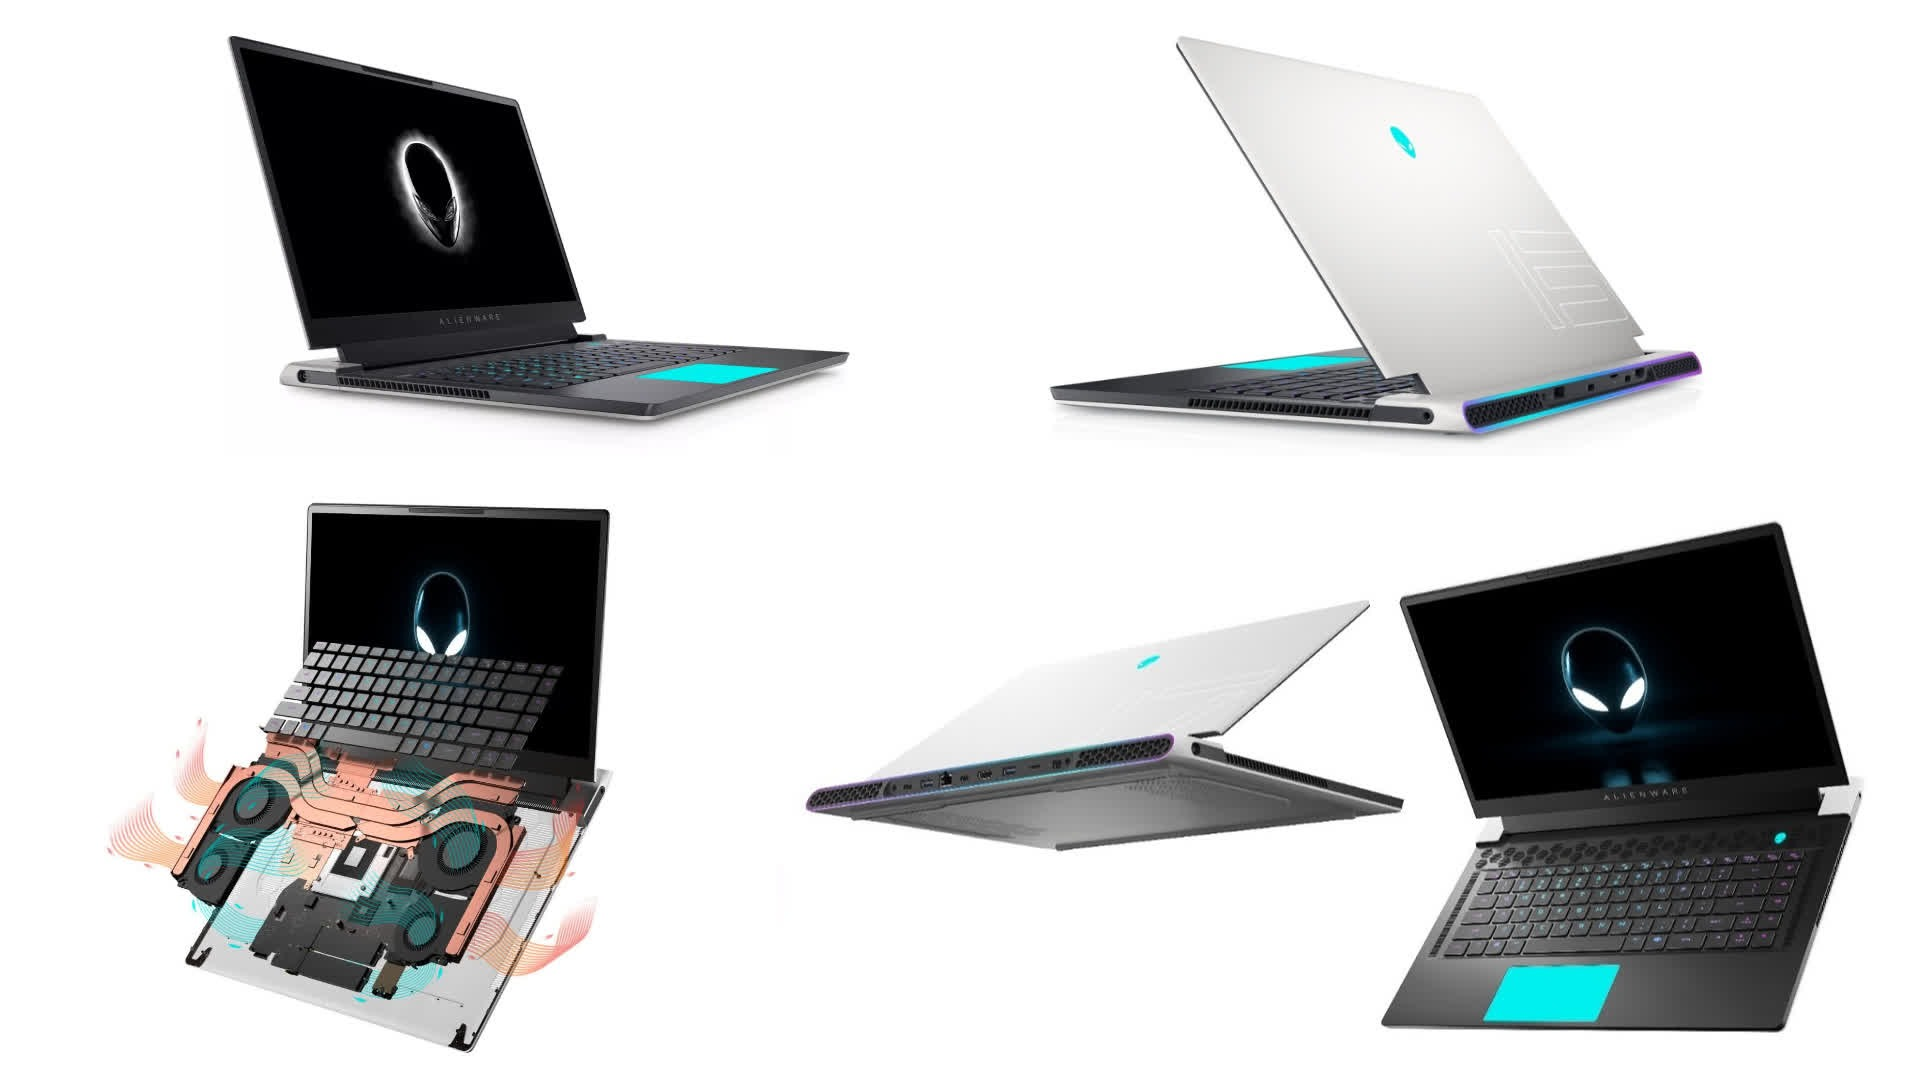 Alienware's new x15 gaming laptop boasts a Razer-thin profile with a quad fan cooling system